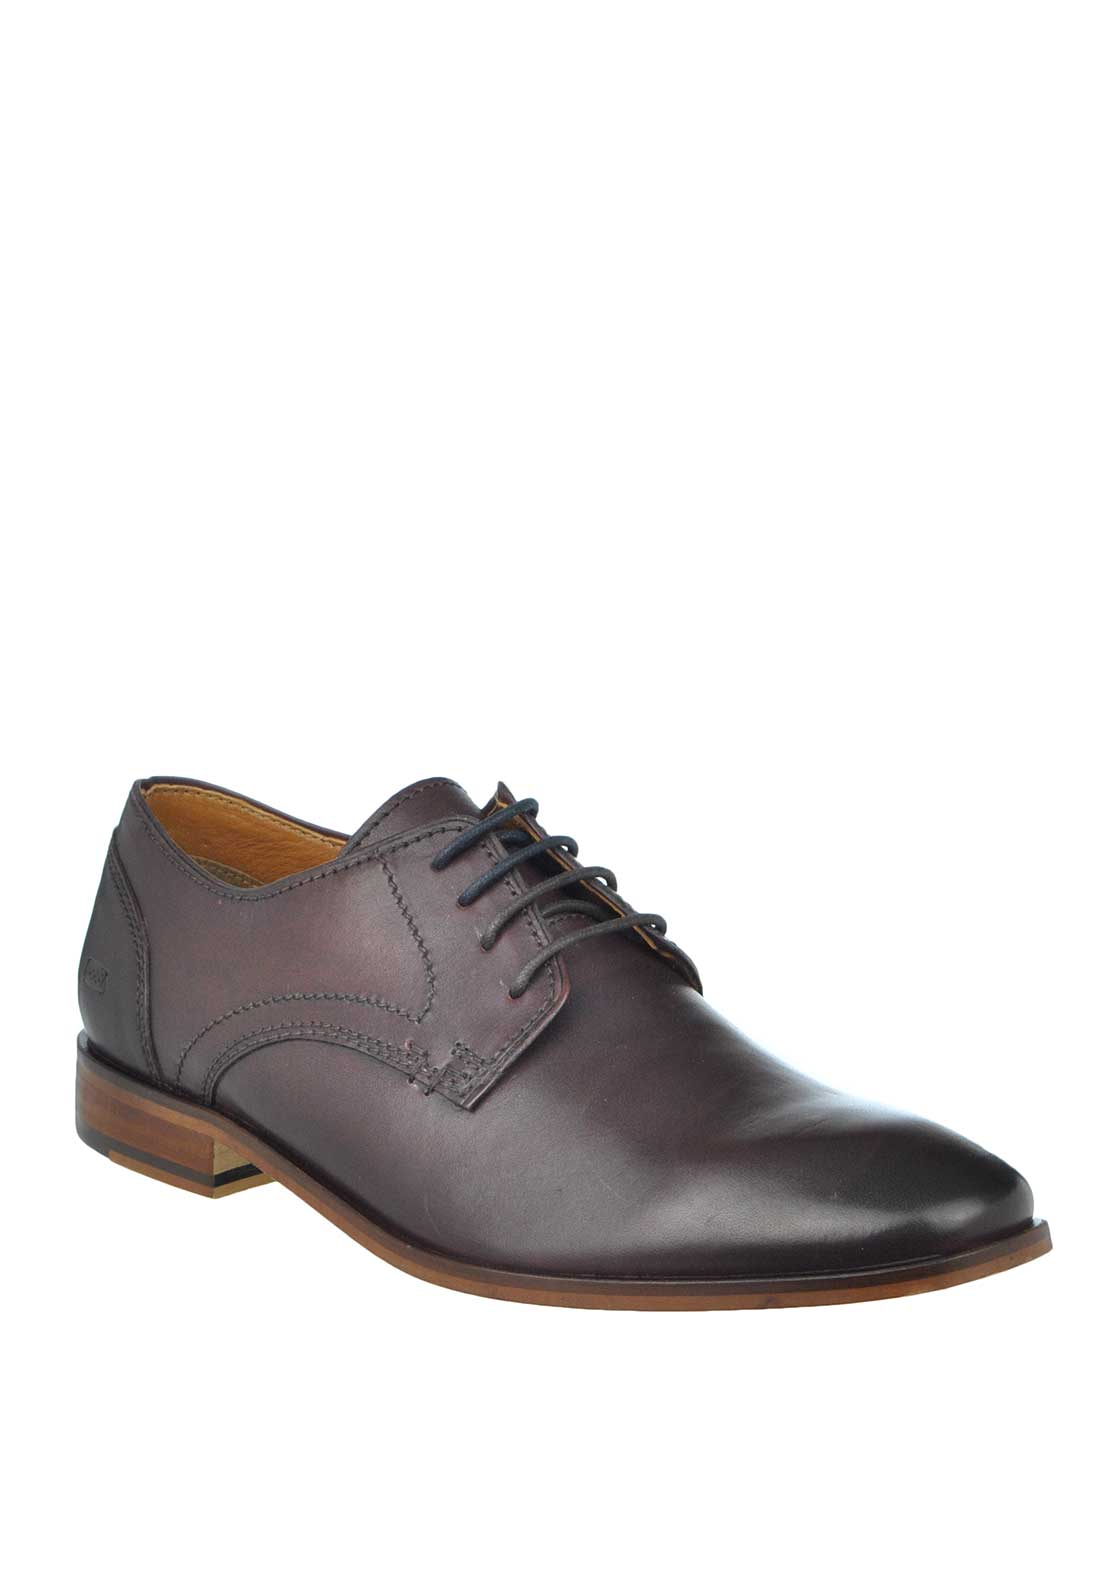 Paul O'Donnell by POD Boston Leather Lace Up Formal Shoes, Brown